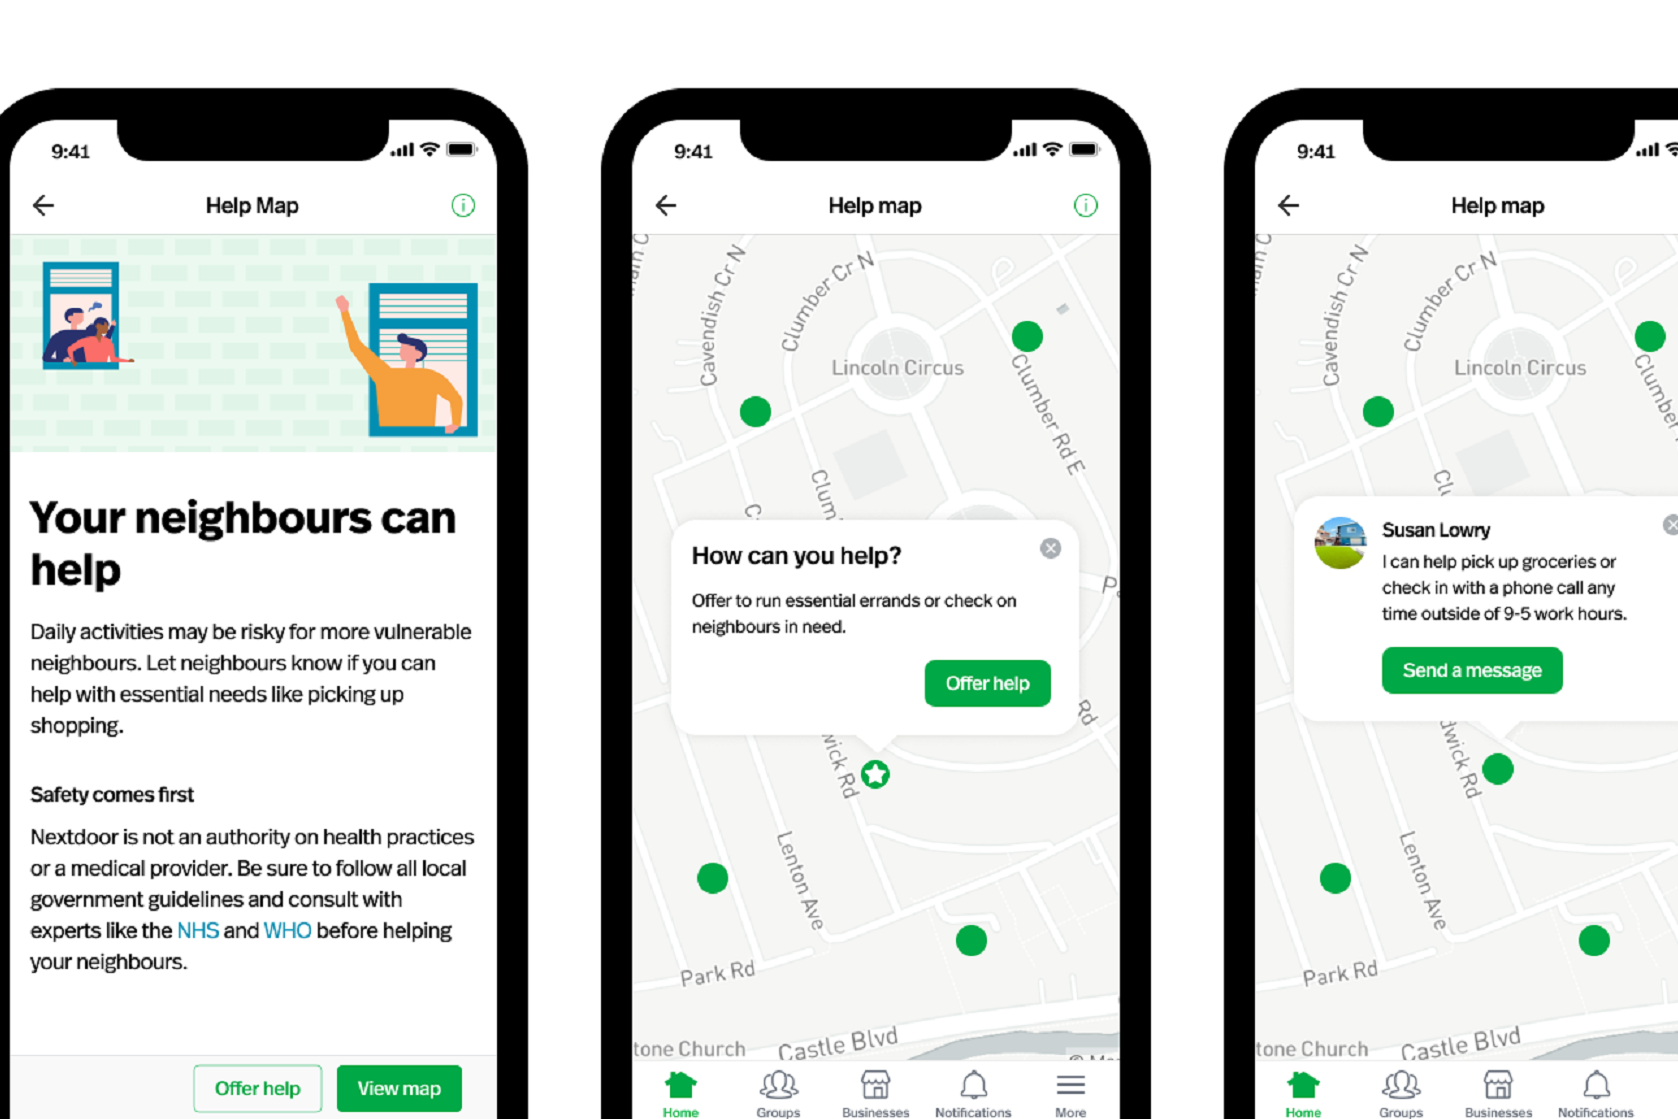 Nextdoor launches Help Map in UK for neighbourhood support - Hereford Times